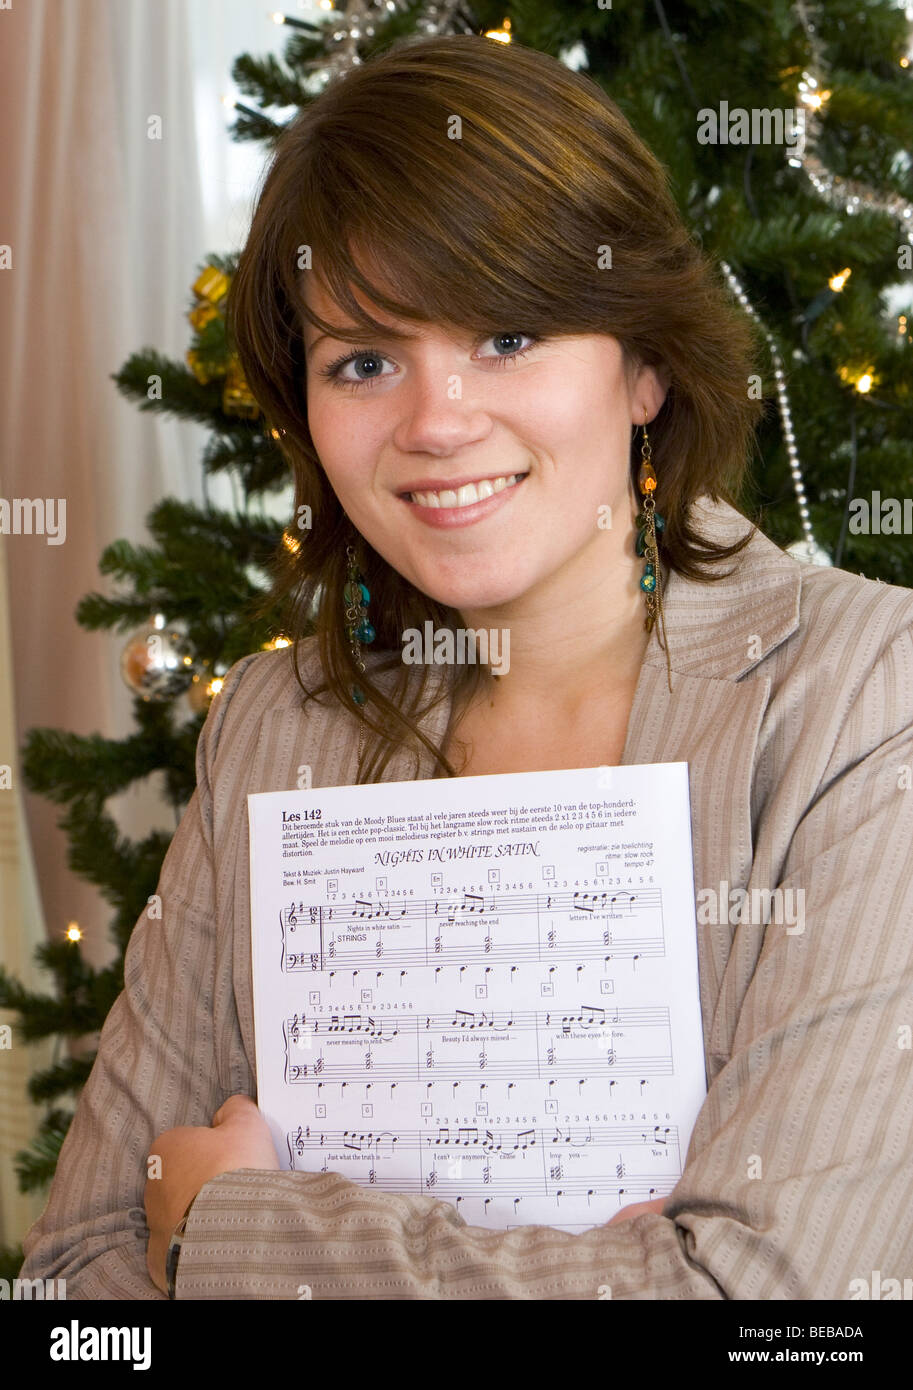 Christmas Songs White Young Woman